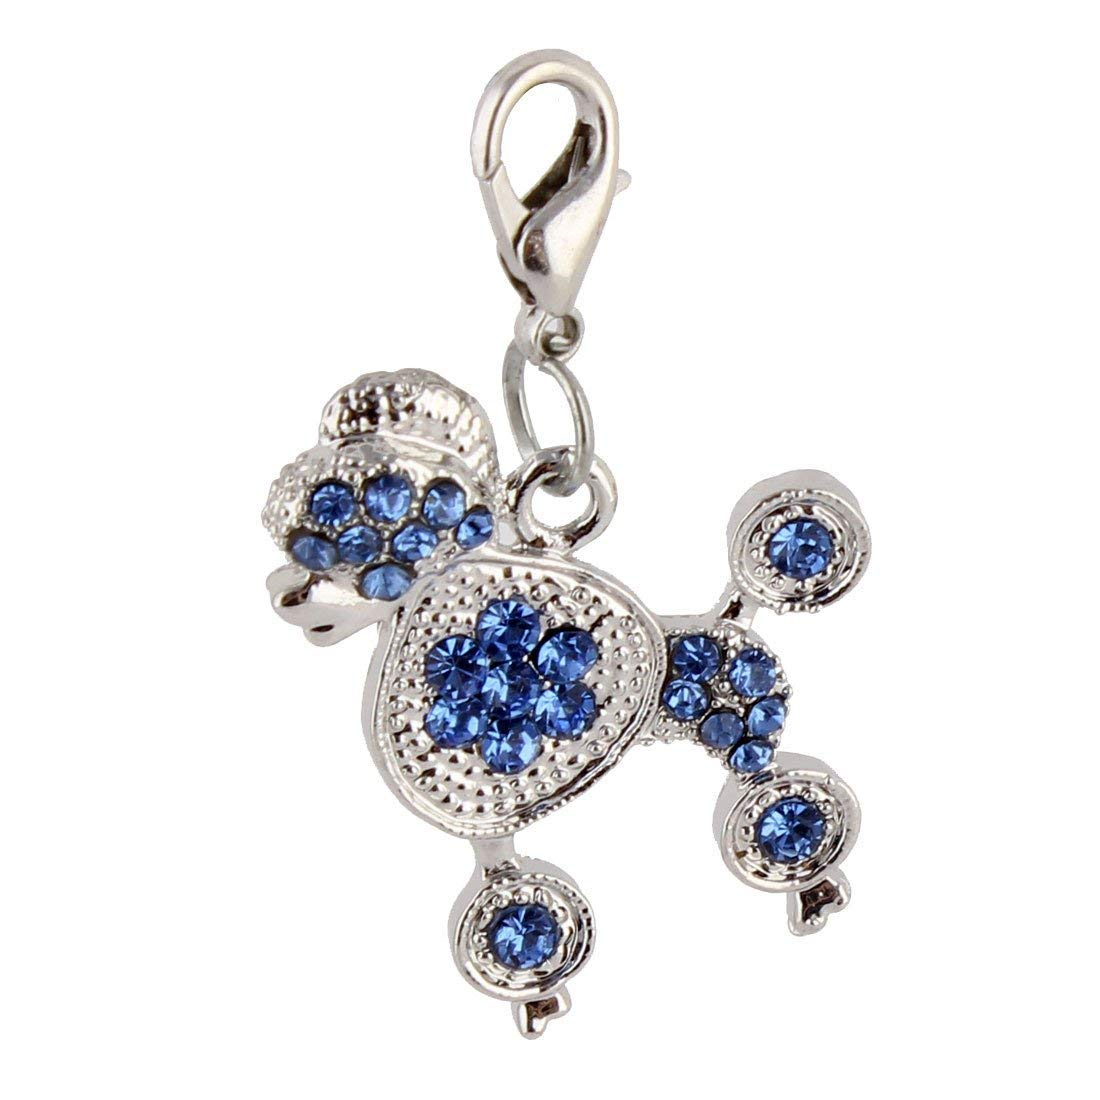 1Pc Metal Dog Shaped Rhinestone Inlaid Pet Puppy Pendant Silver Tone bluee